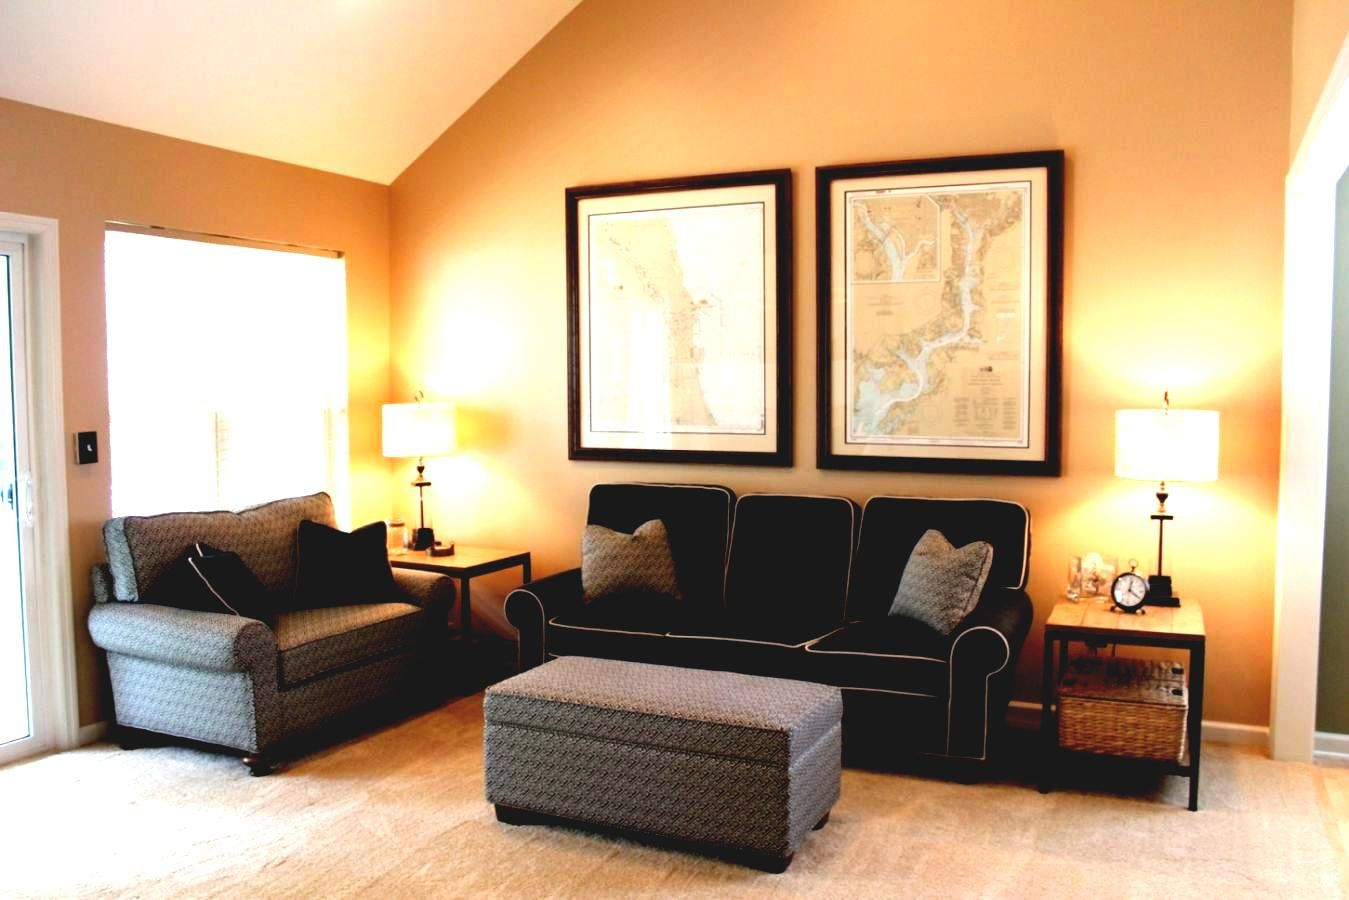 Modern interior painting ideas | Living room wall color